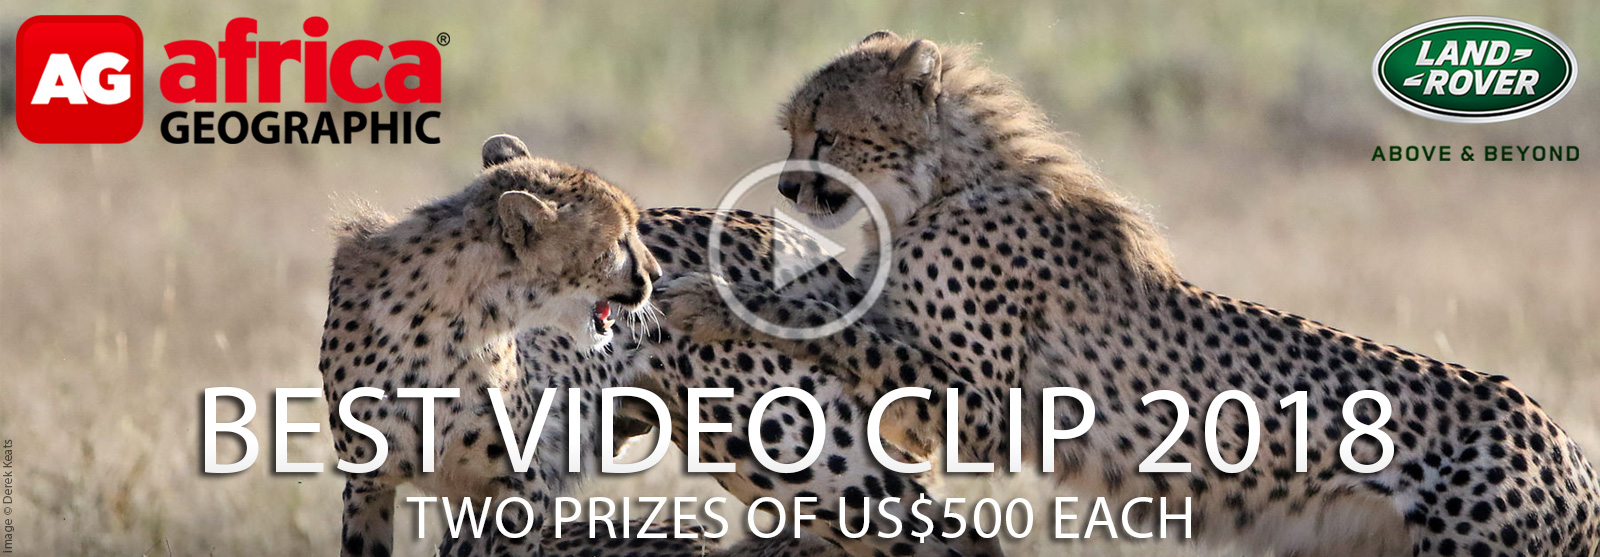 Best video clip competition 2018